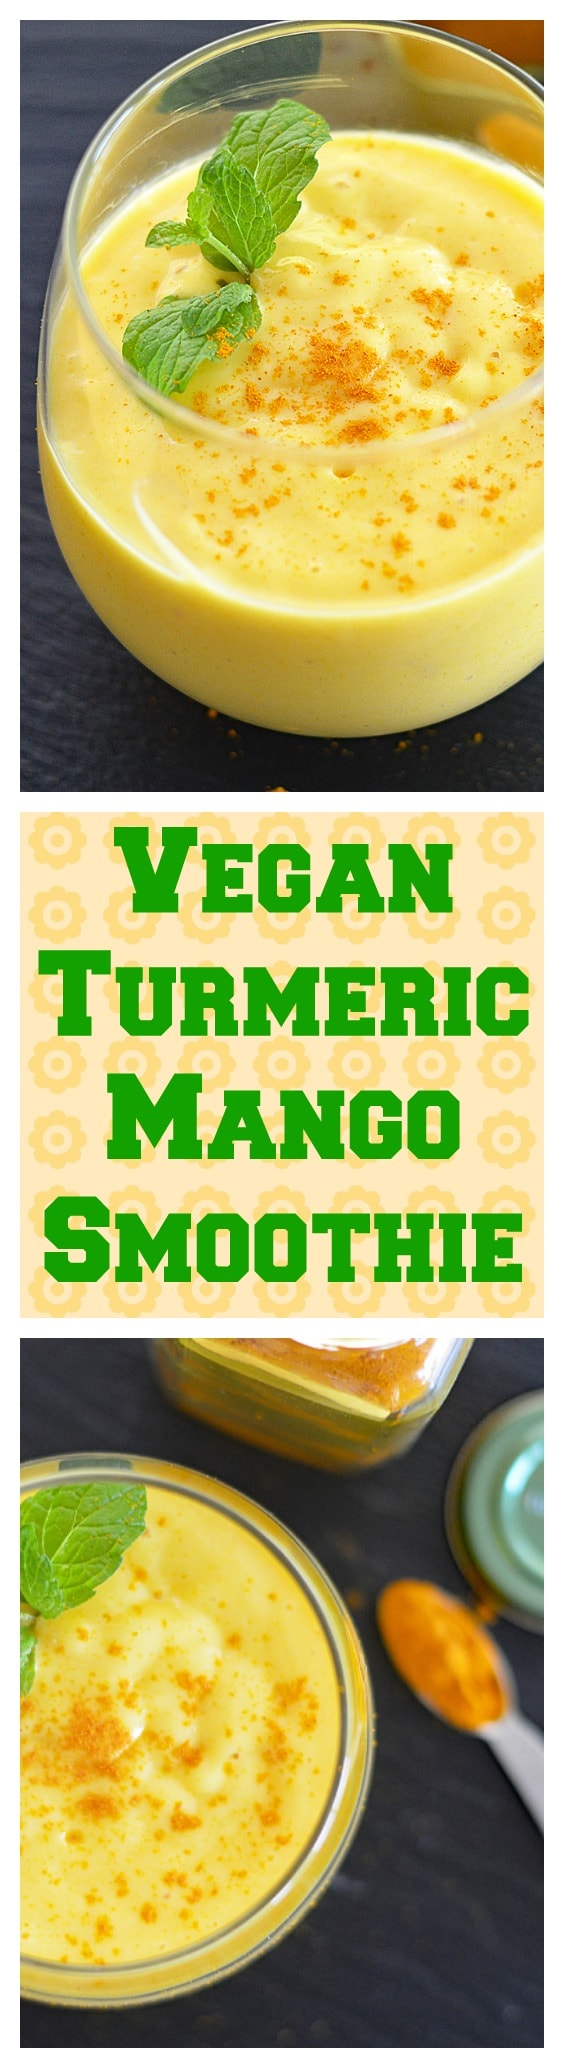 Vegan Turmeric Mango Smoothie Long Pinterest Pic